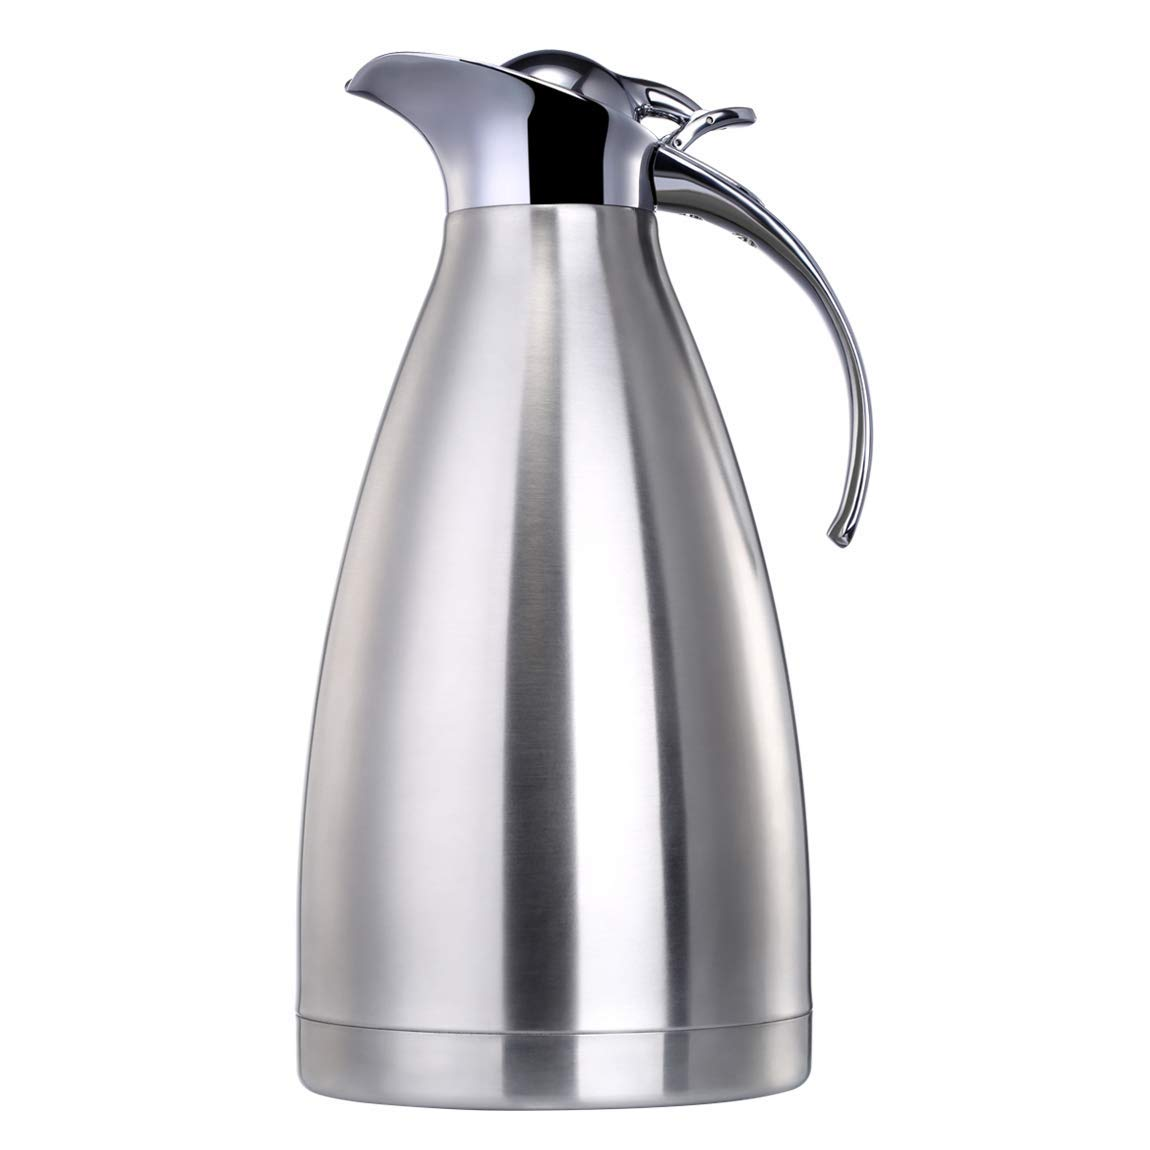 68oz Thermal Carafes Insulated Coffee Thermos Stainless Steel Vacuum Pot Flask for Coffee, Hot Water, Tea, Hot Beverage (SilverS)